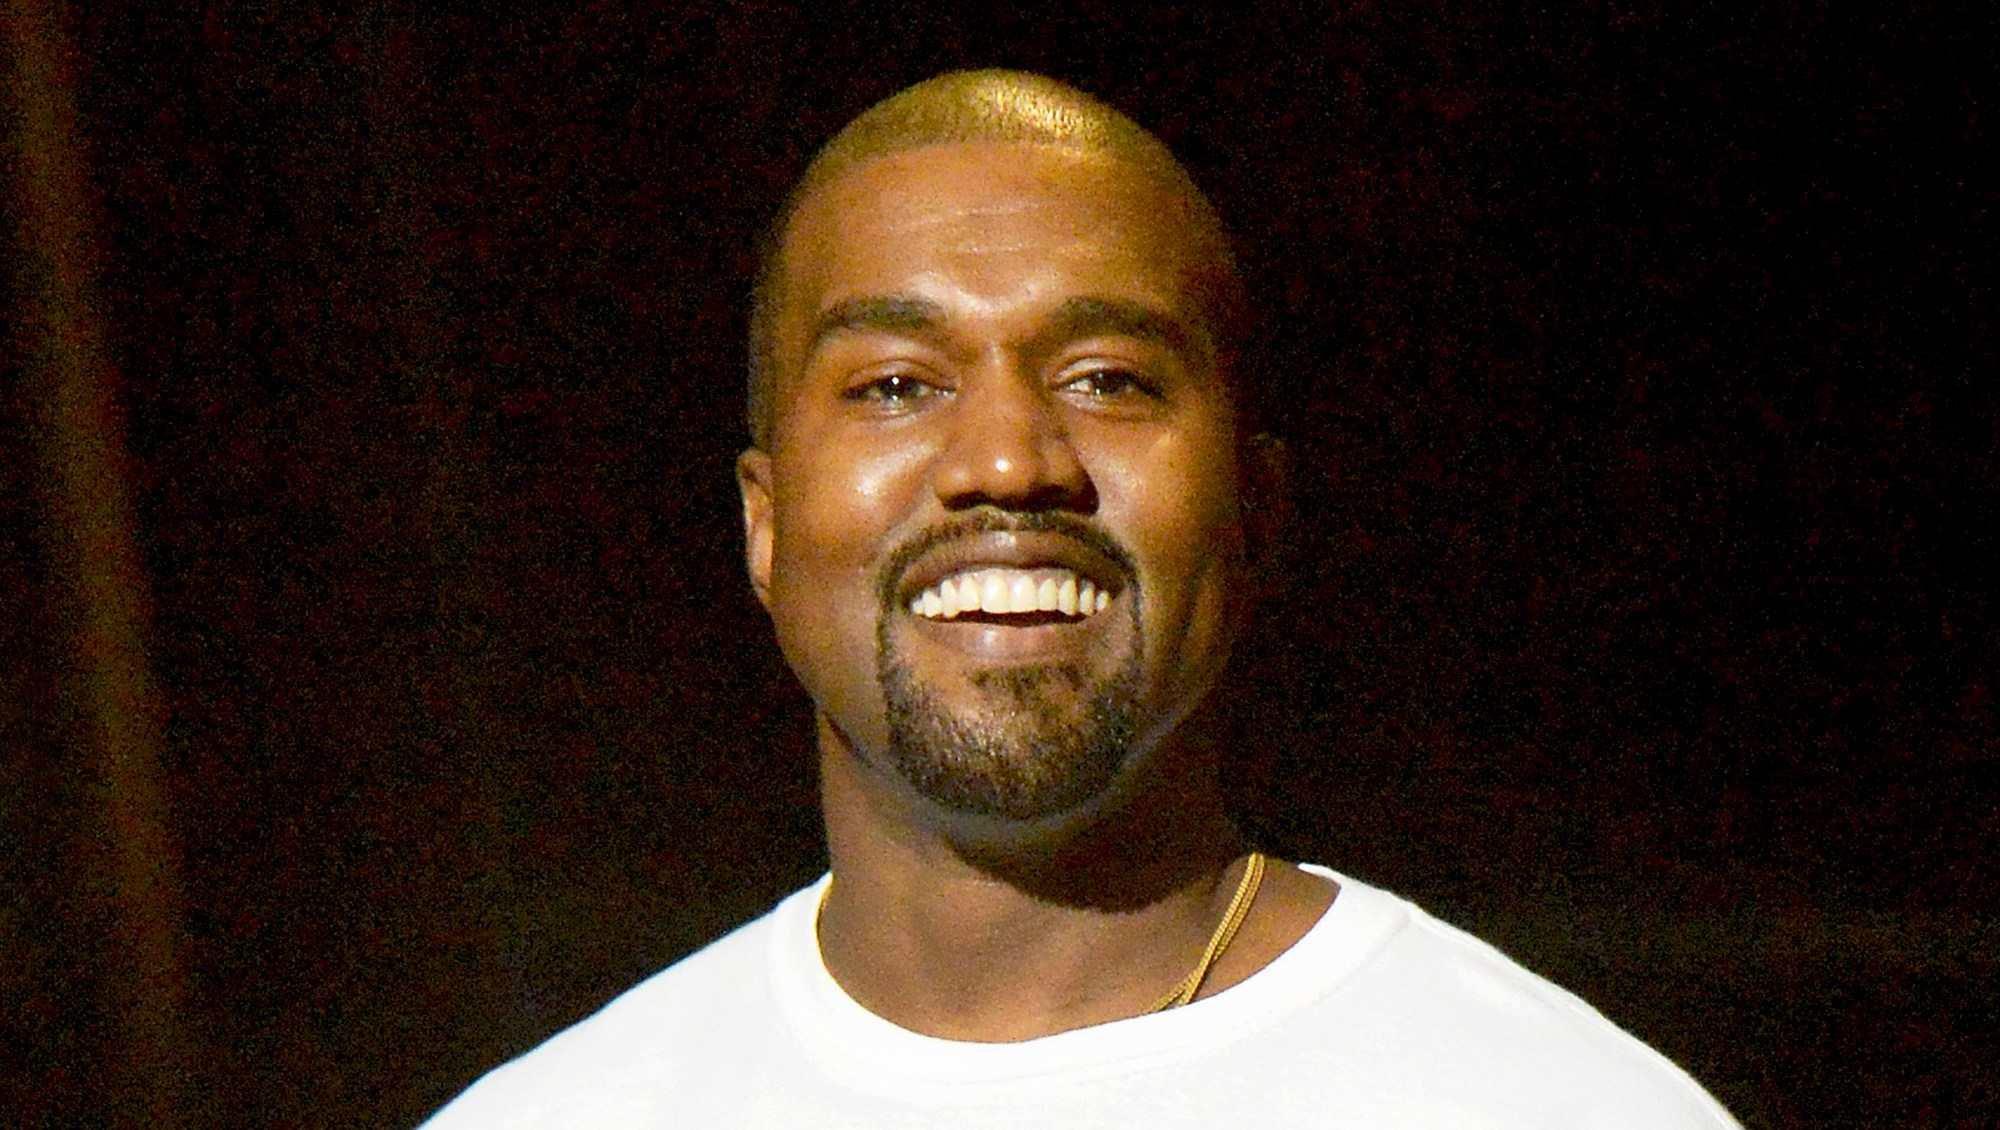 Kanye West during the 2016 MTV Video Music Awards at Madison Square Garden in New York City.